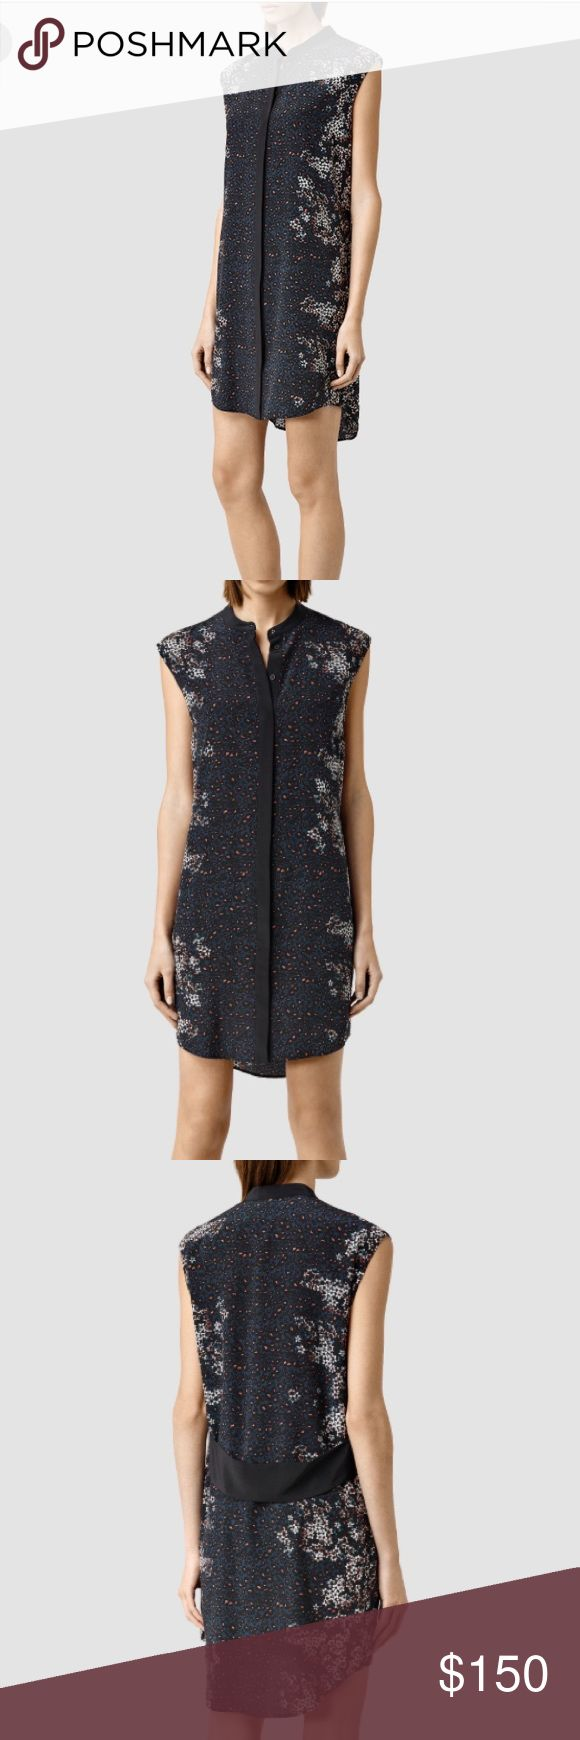 Luna allsaints dress NWT Brand new with tags. Beautiful Allsaints dress. All Saints Dresses Midi